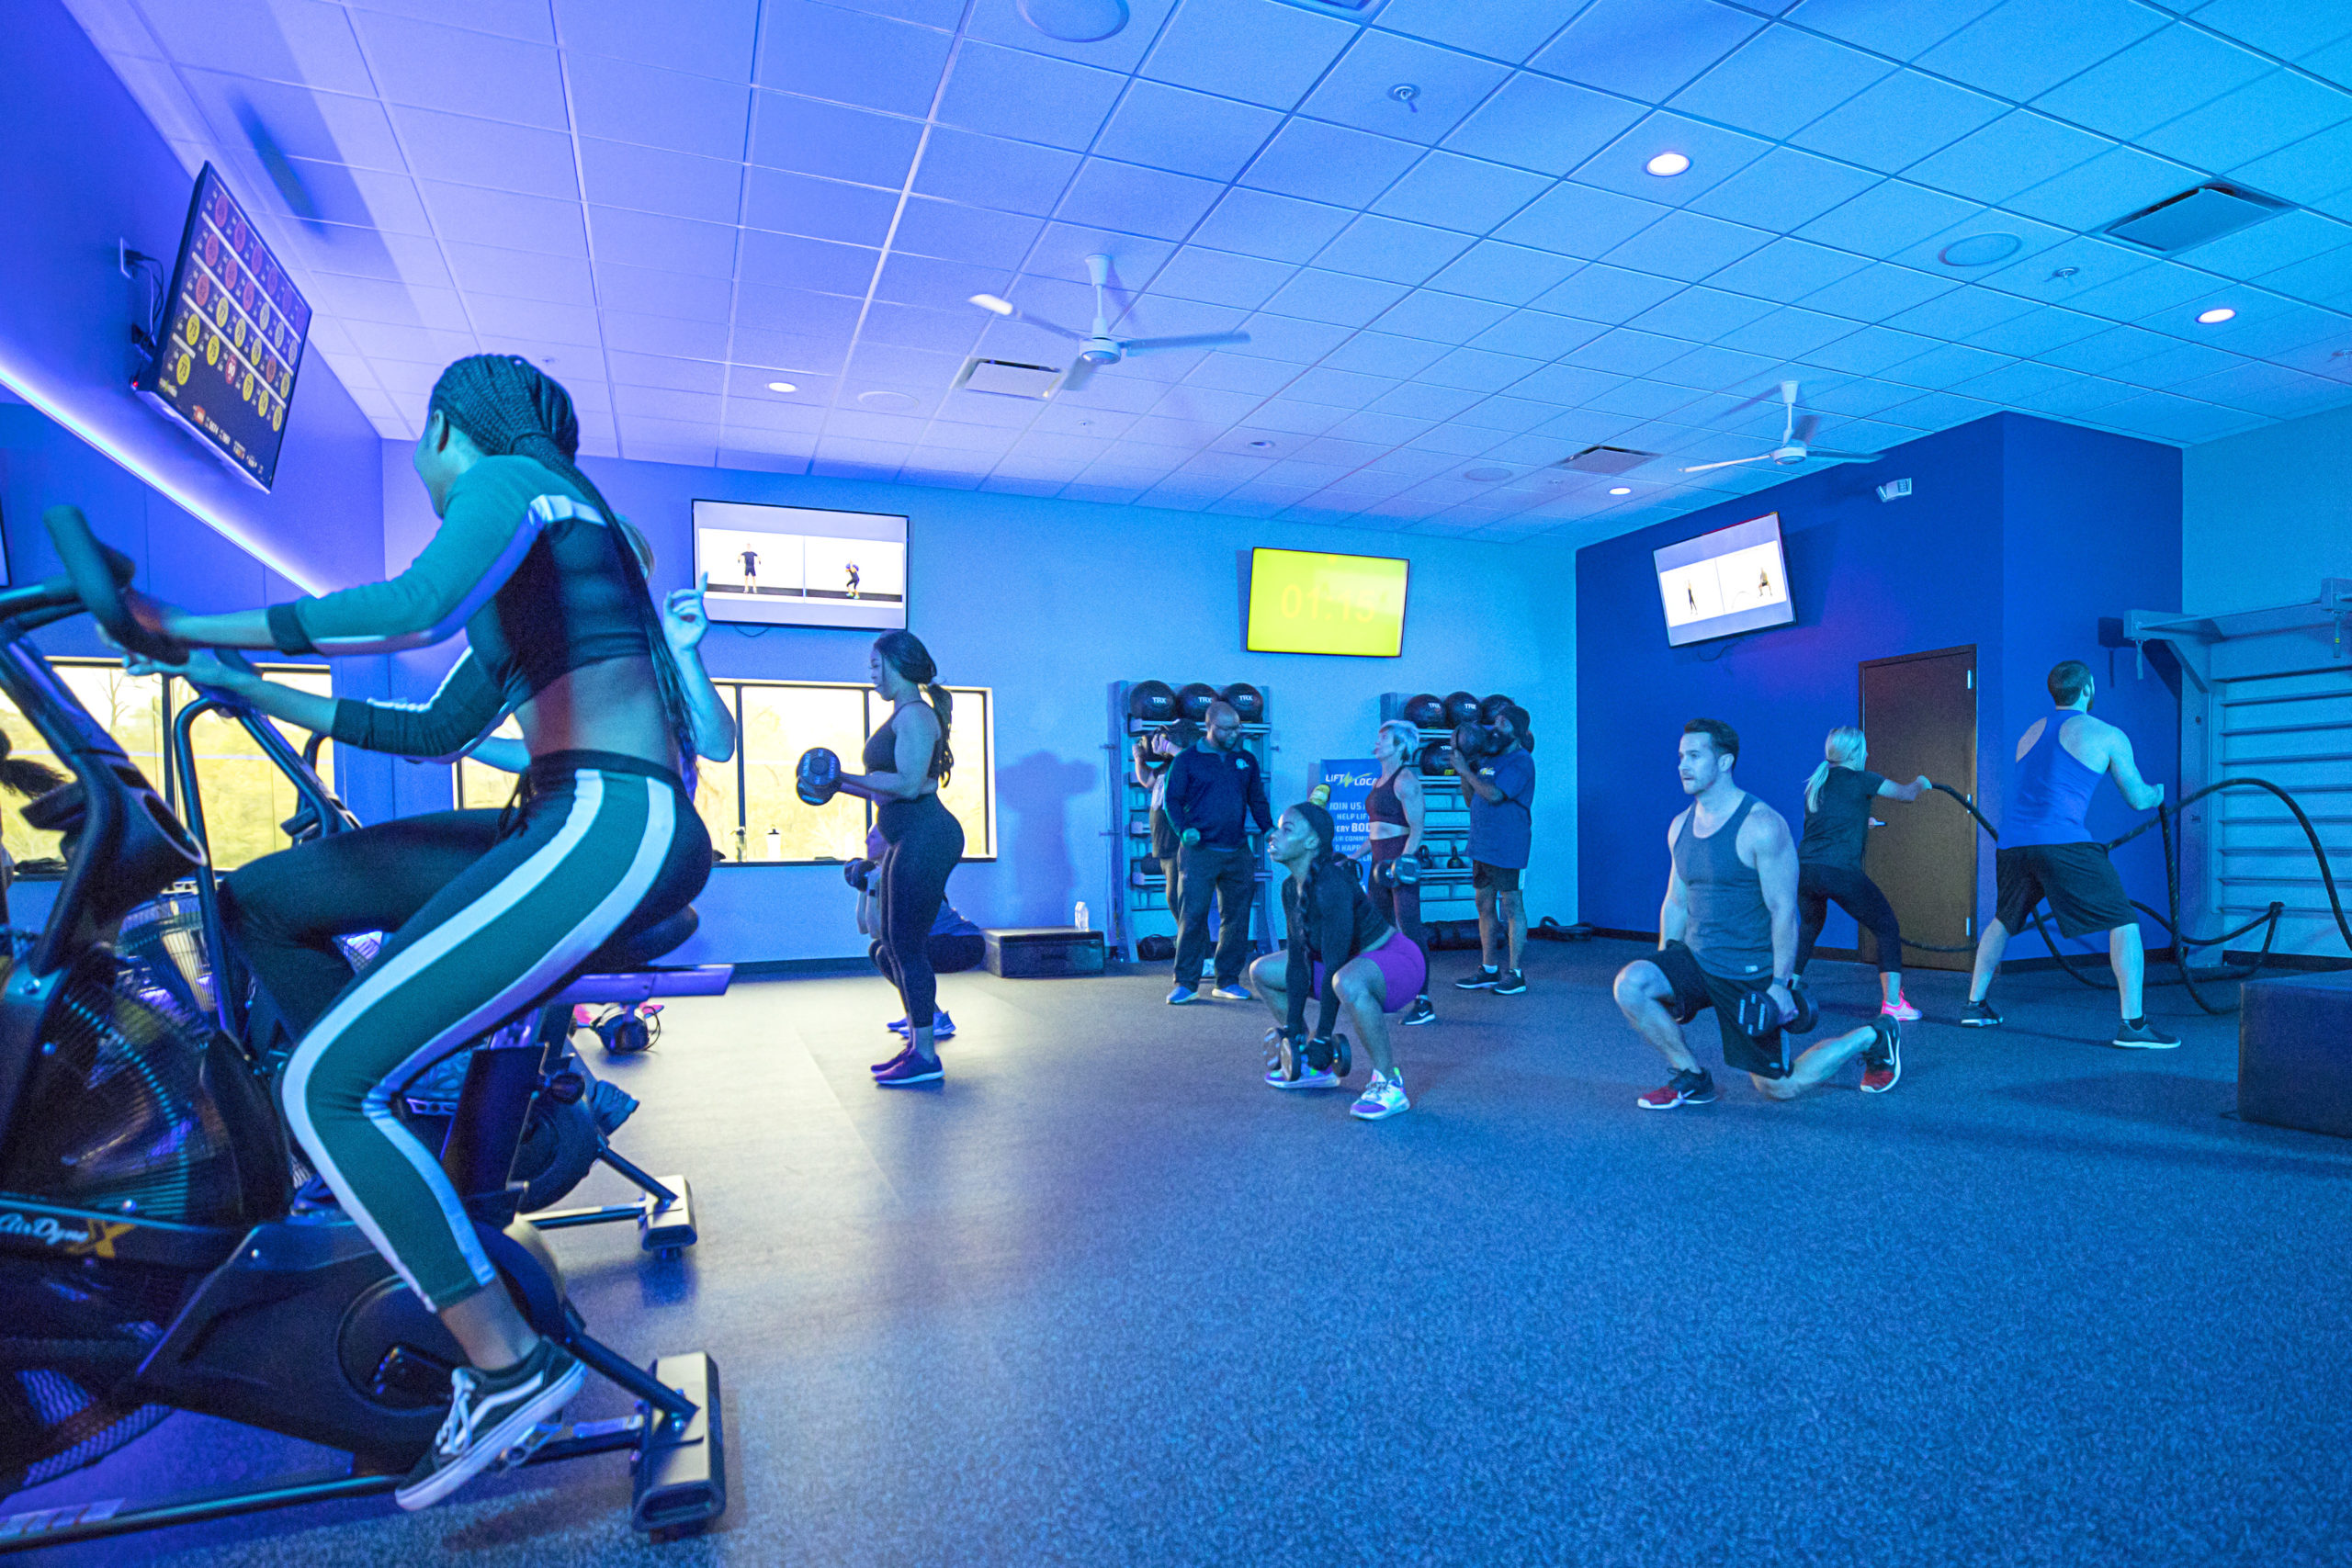 Club Fitness patrons doing a series of exercises in the Pulse Studio